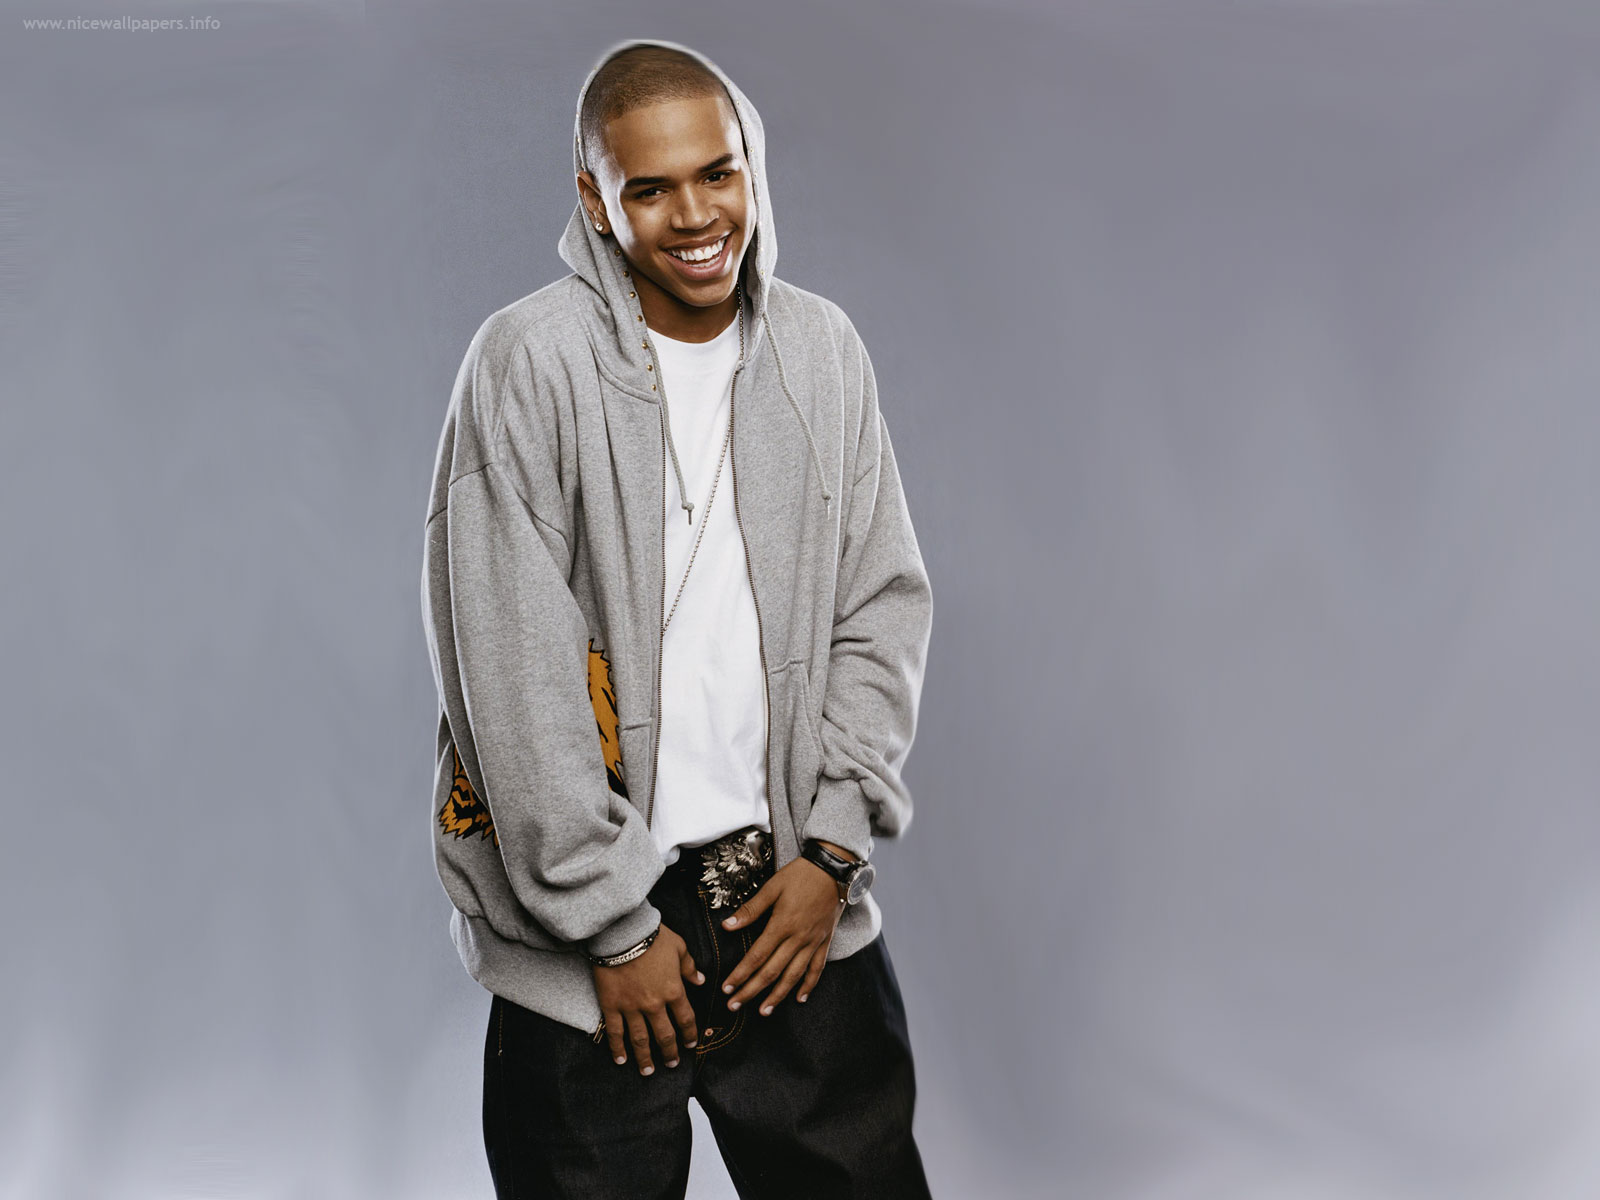 chris-brown-high-definition-wallpaper-for-desktop